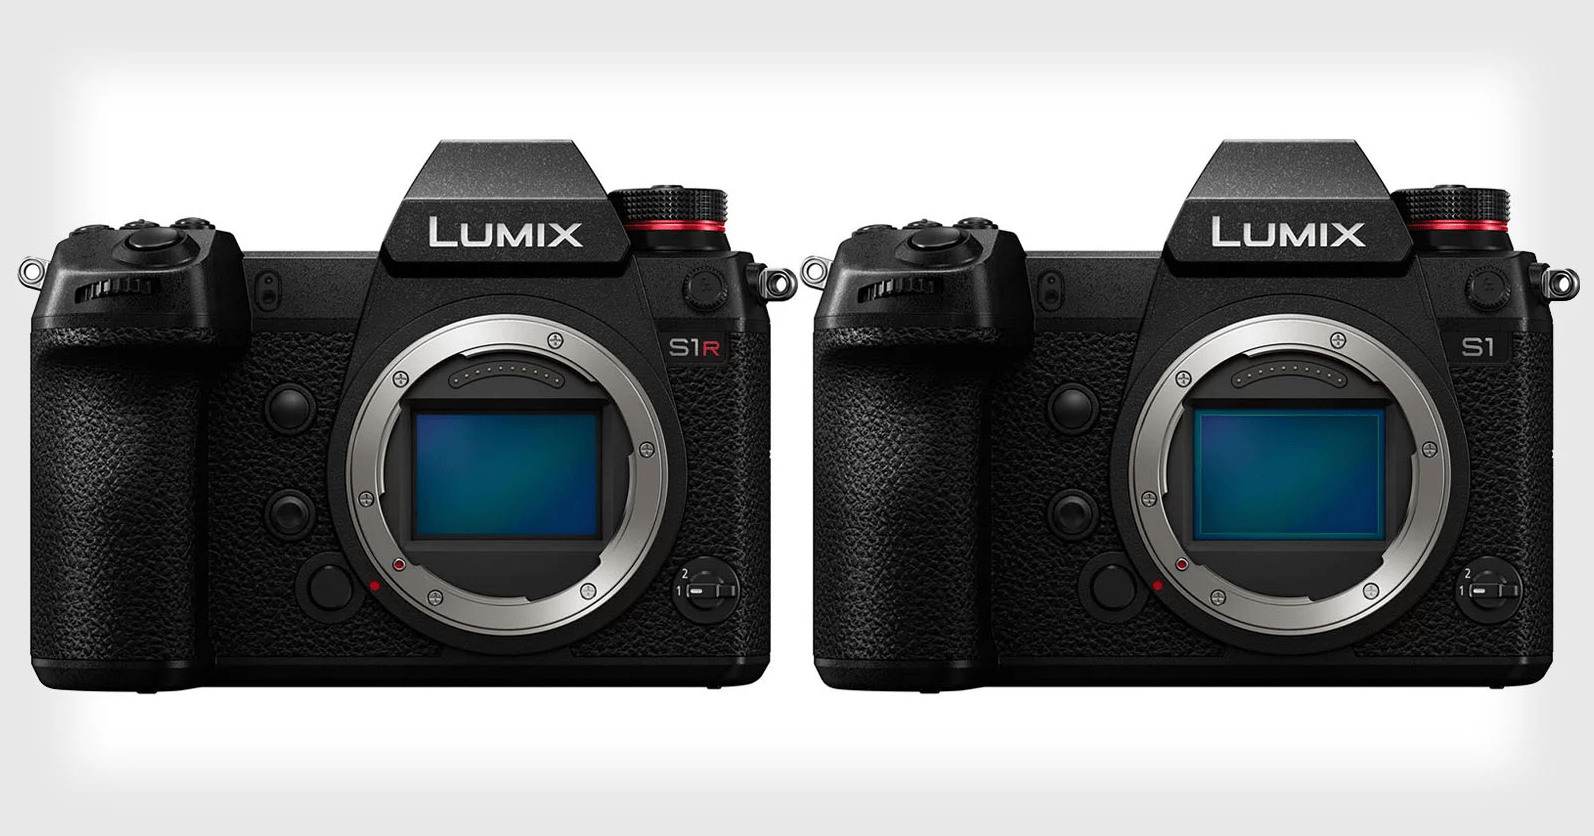 Panasonic Shows Off Their New Full Frame Mirrorless Cameras